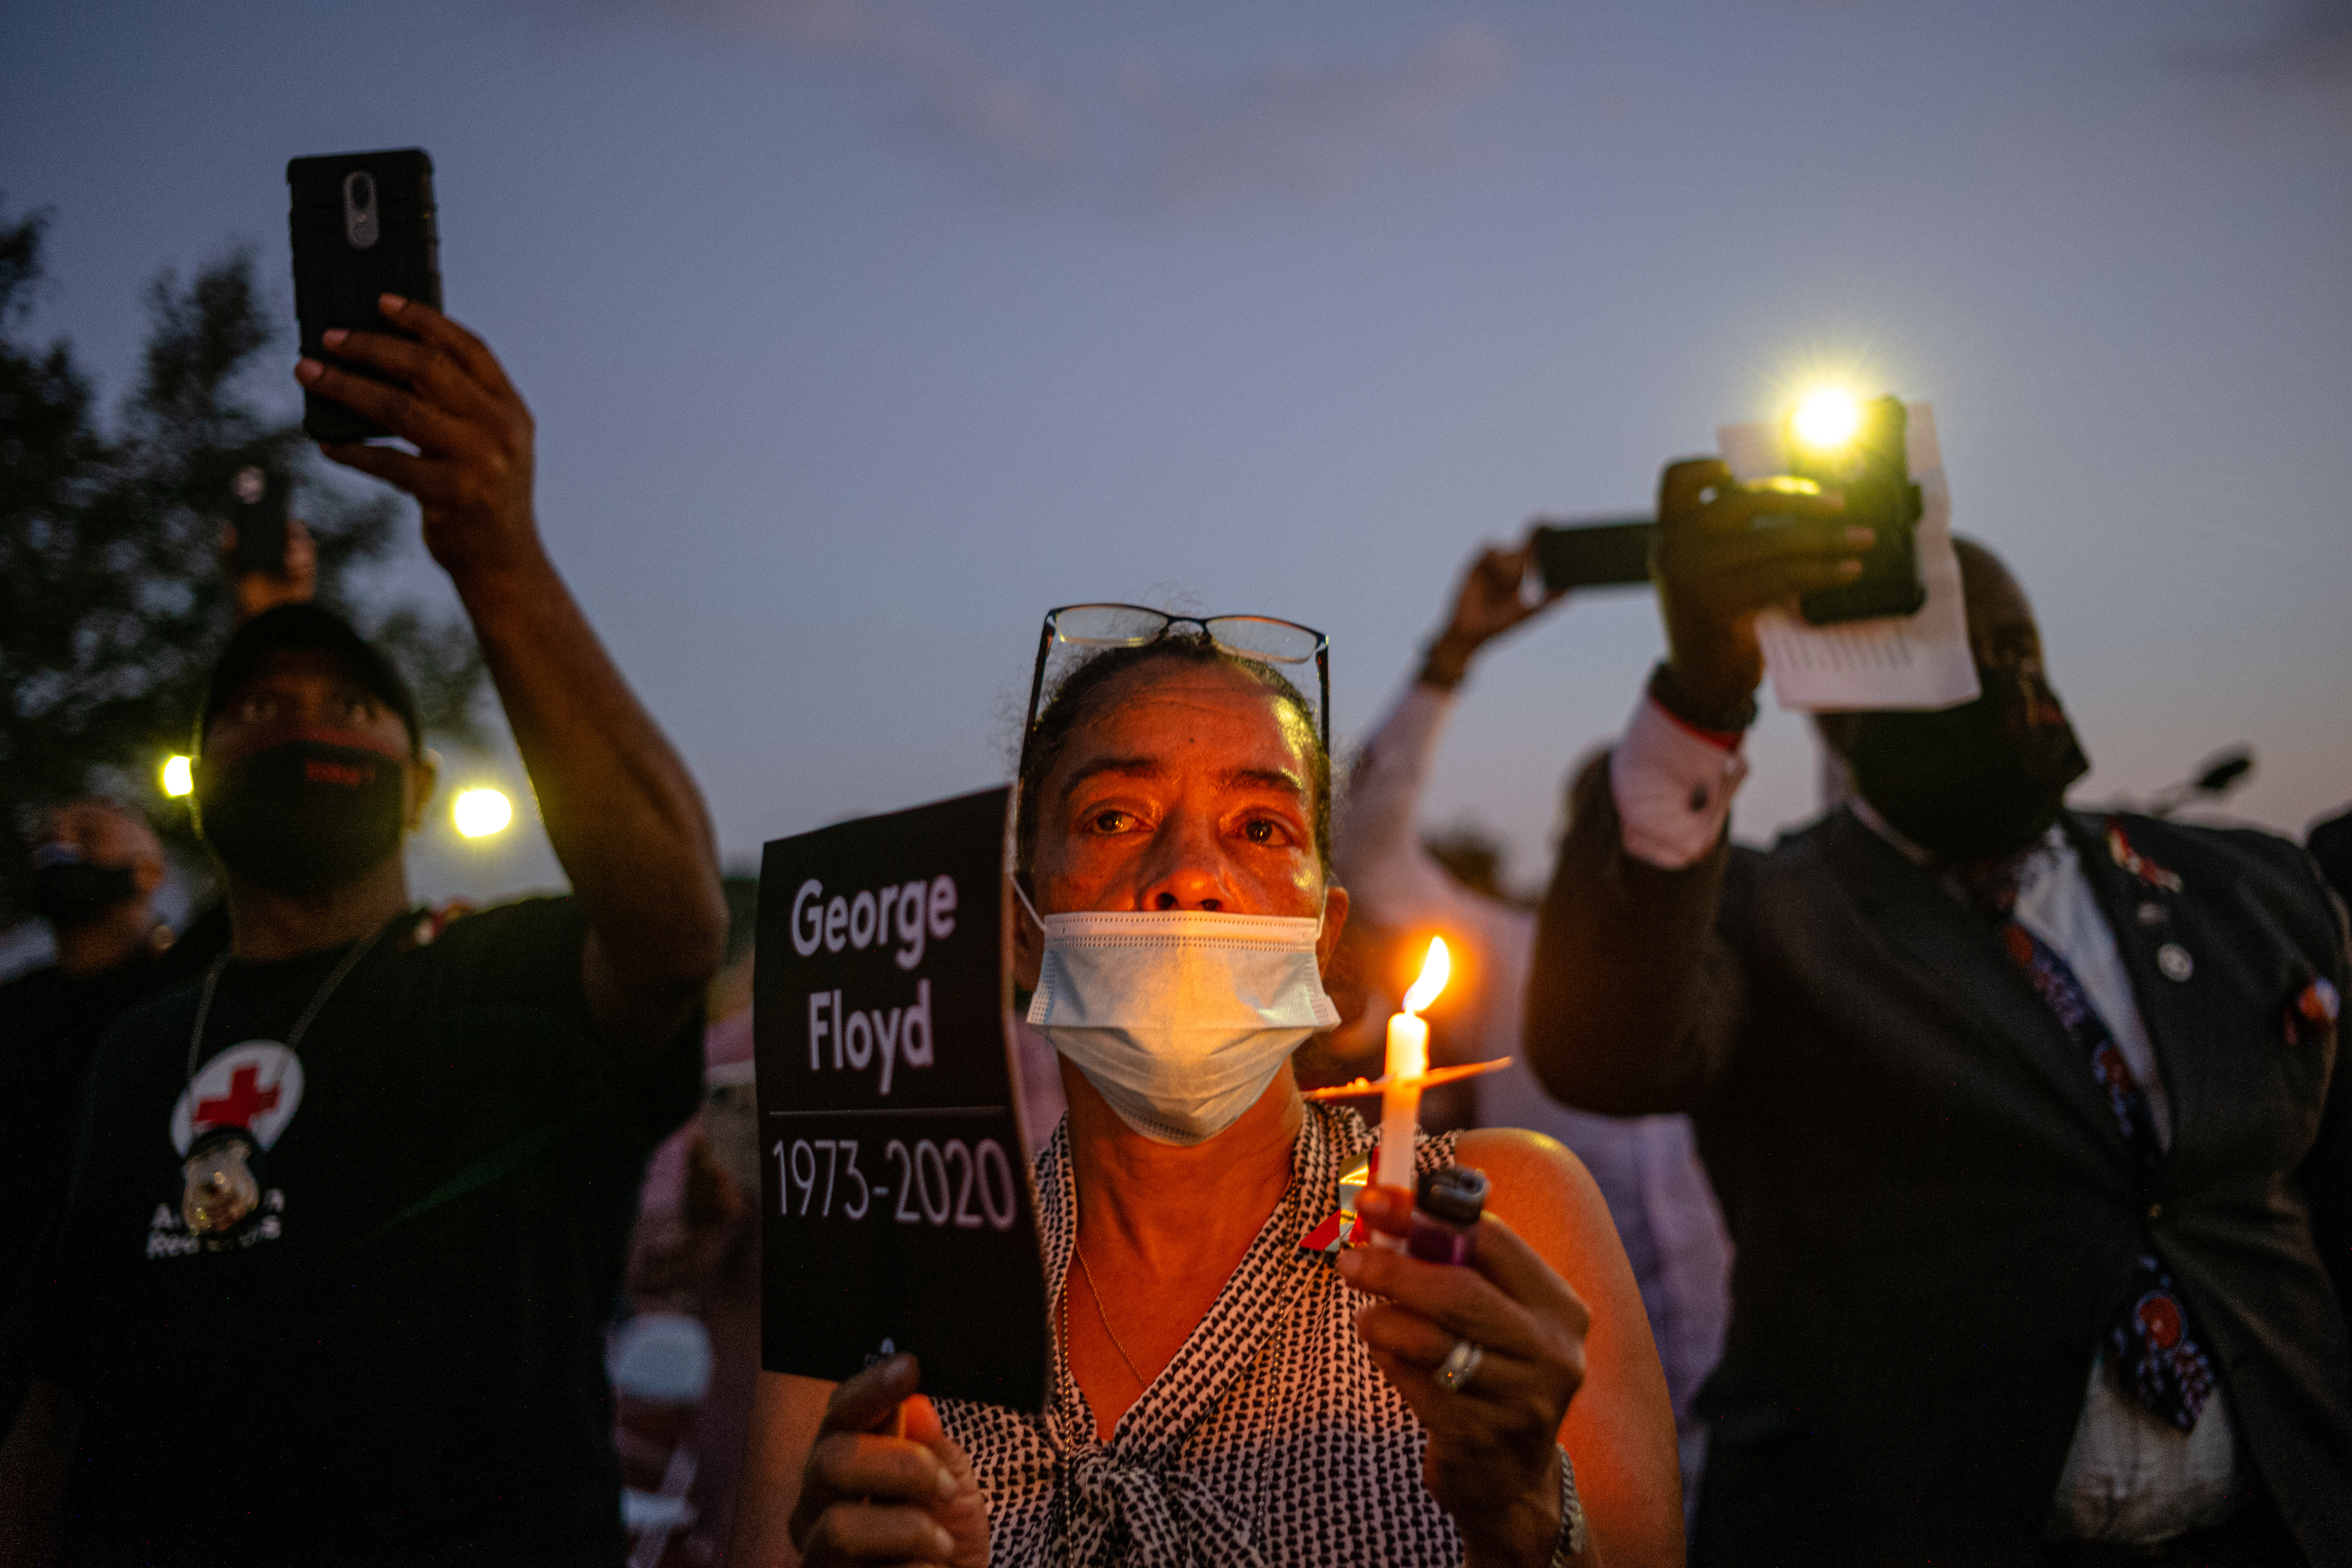 Attendees at a candlelight vigil honoring George Floyd at Jack Yates High School in Houston on June 8.